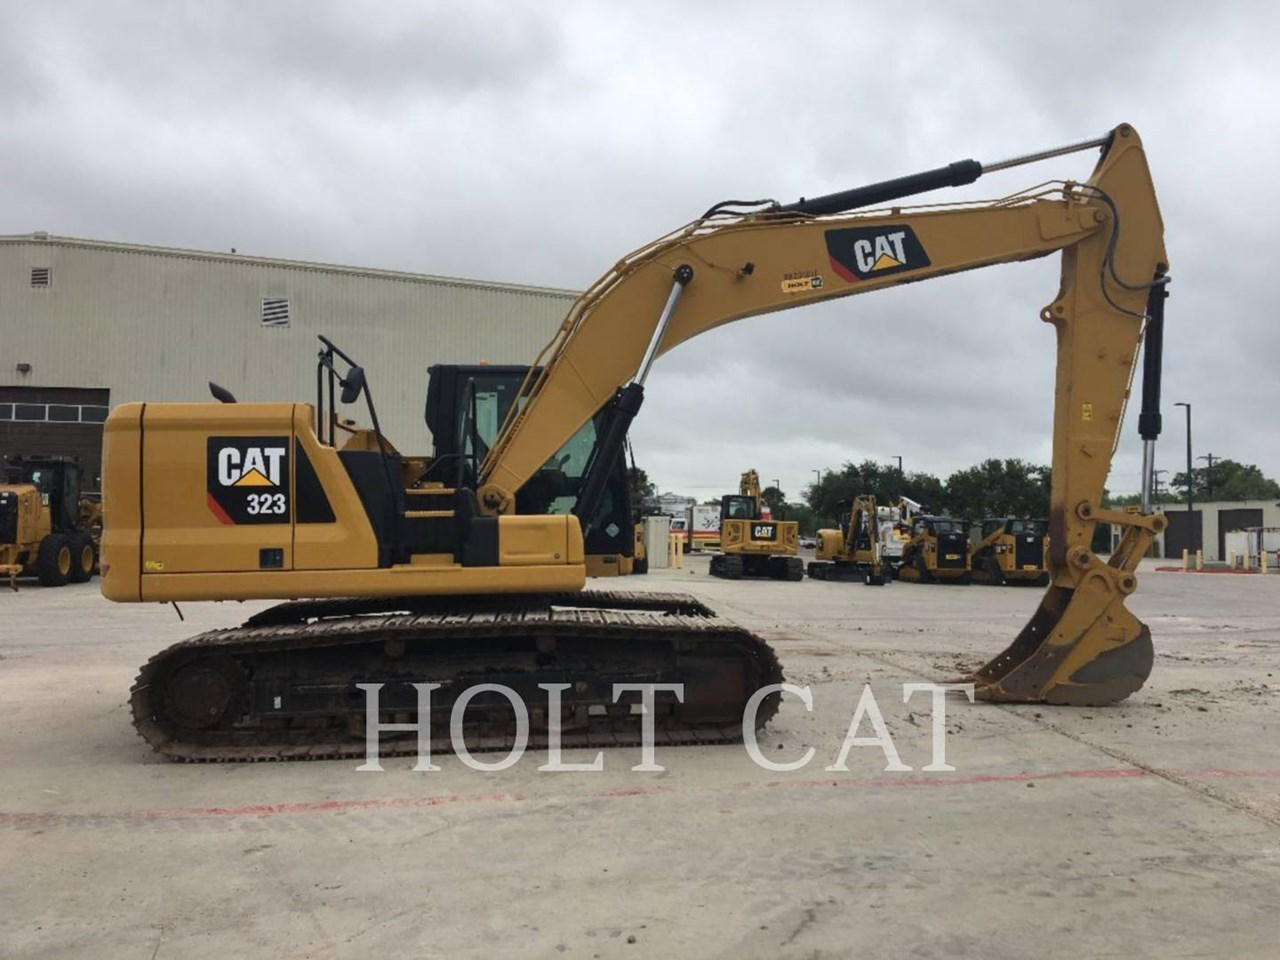 2018 Caterpillar 323 Image 3